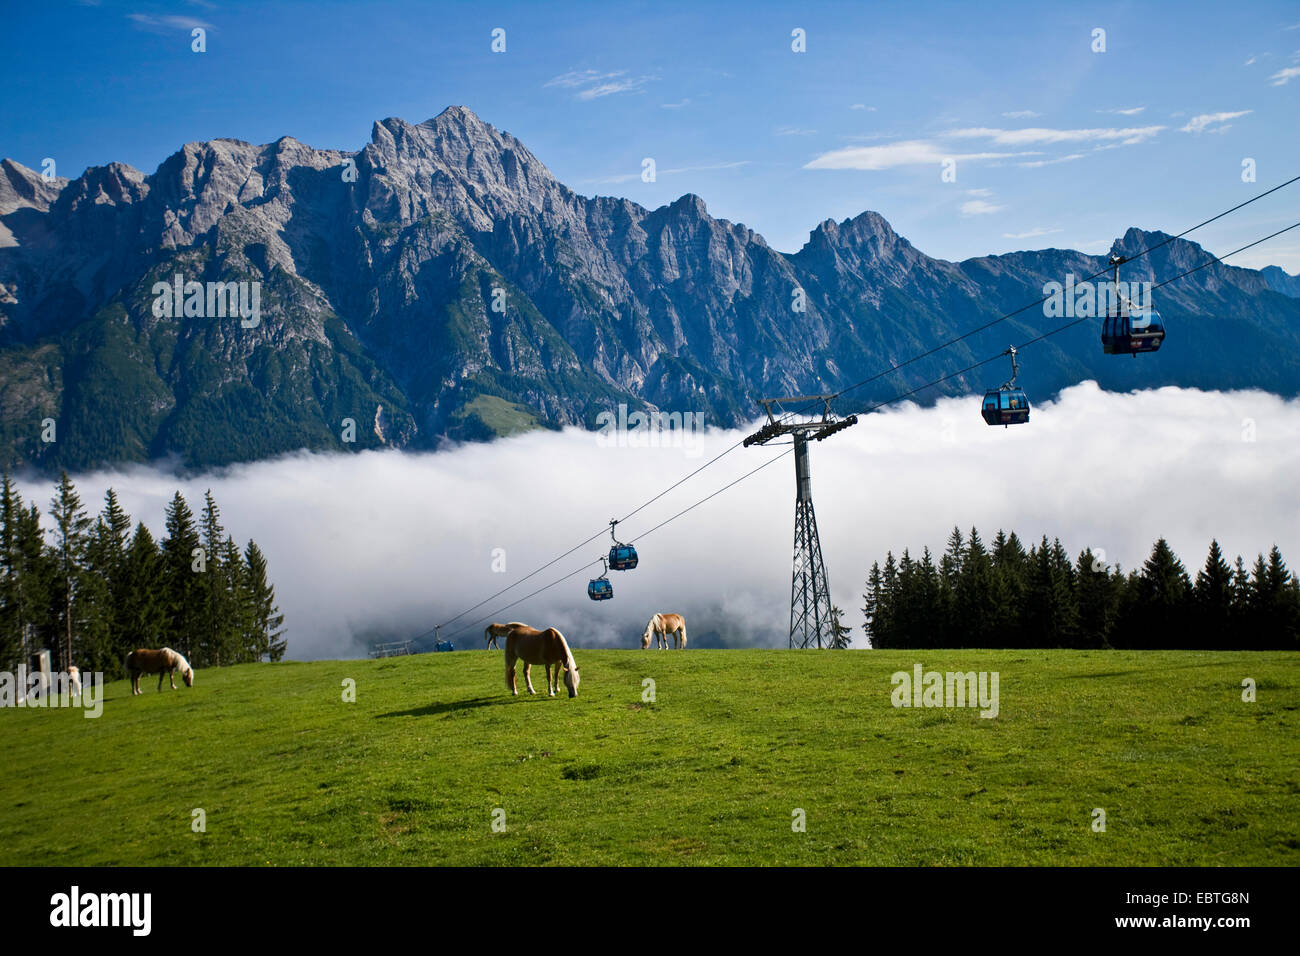 alpine pasture in the sunshine above a canyon filled with clouds, Austria, Salzburg, Salzburgerland, Leogang Stock Photo